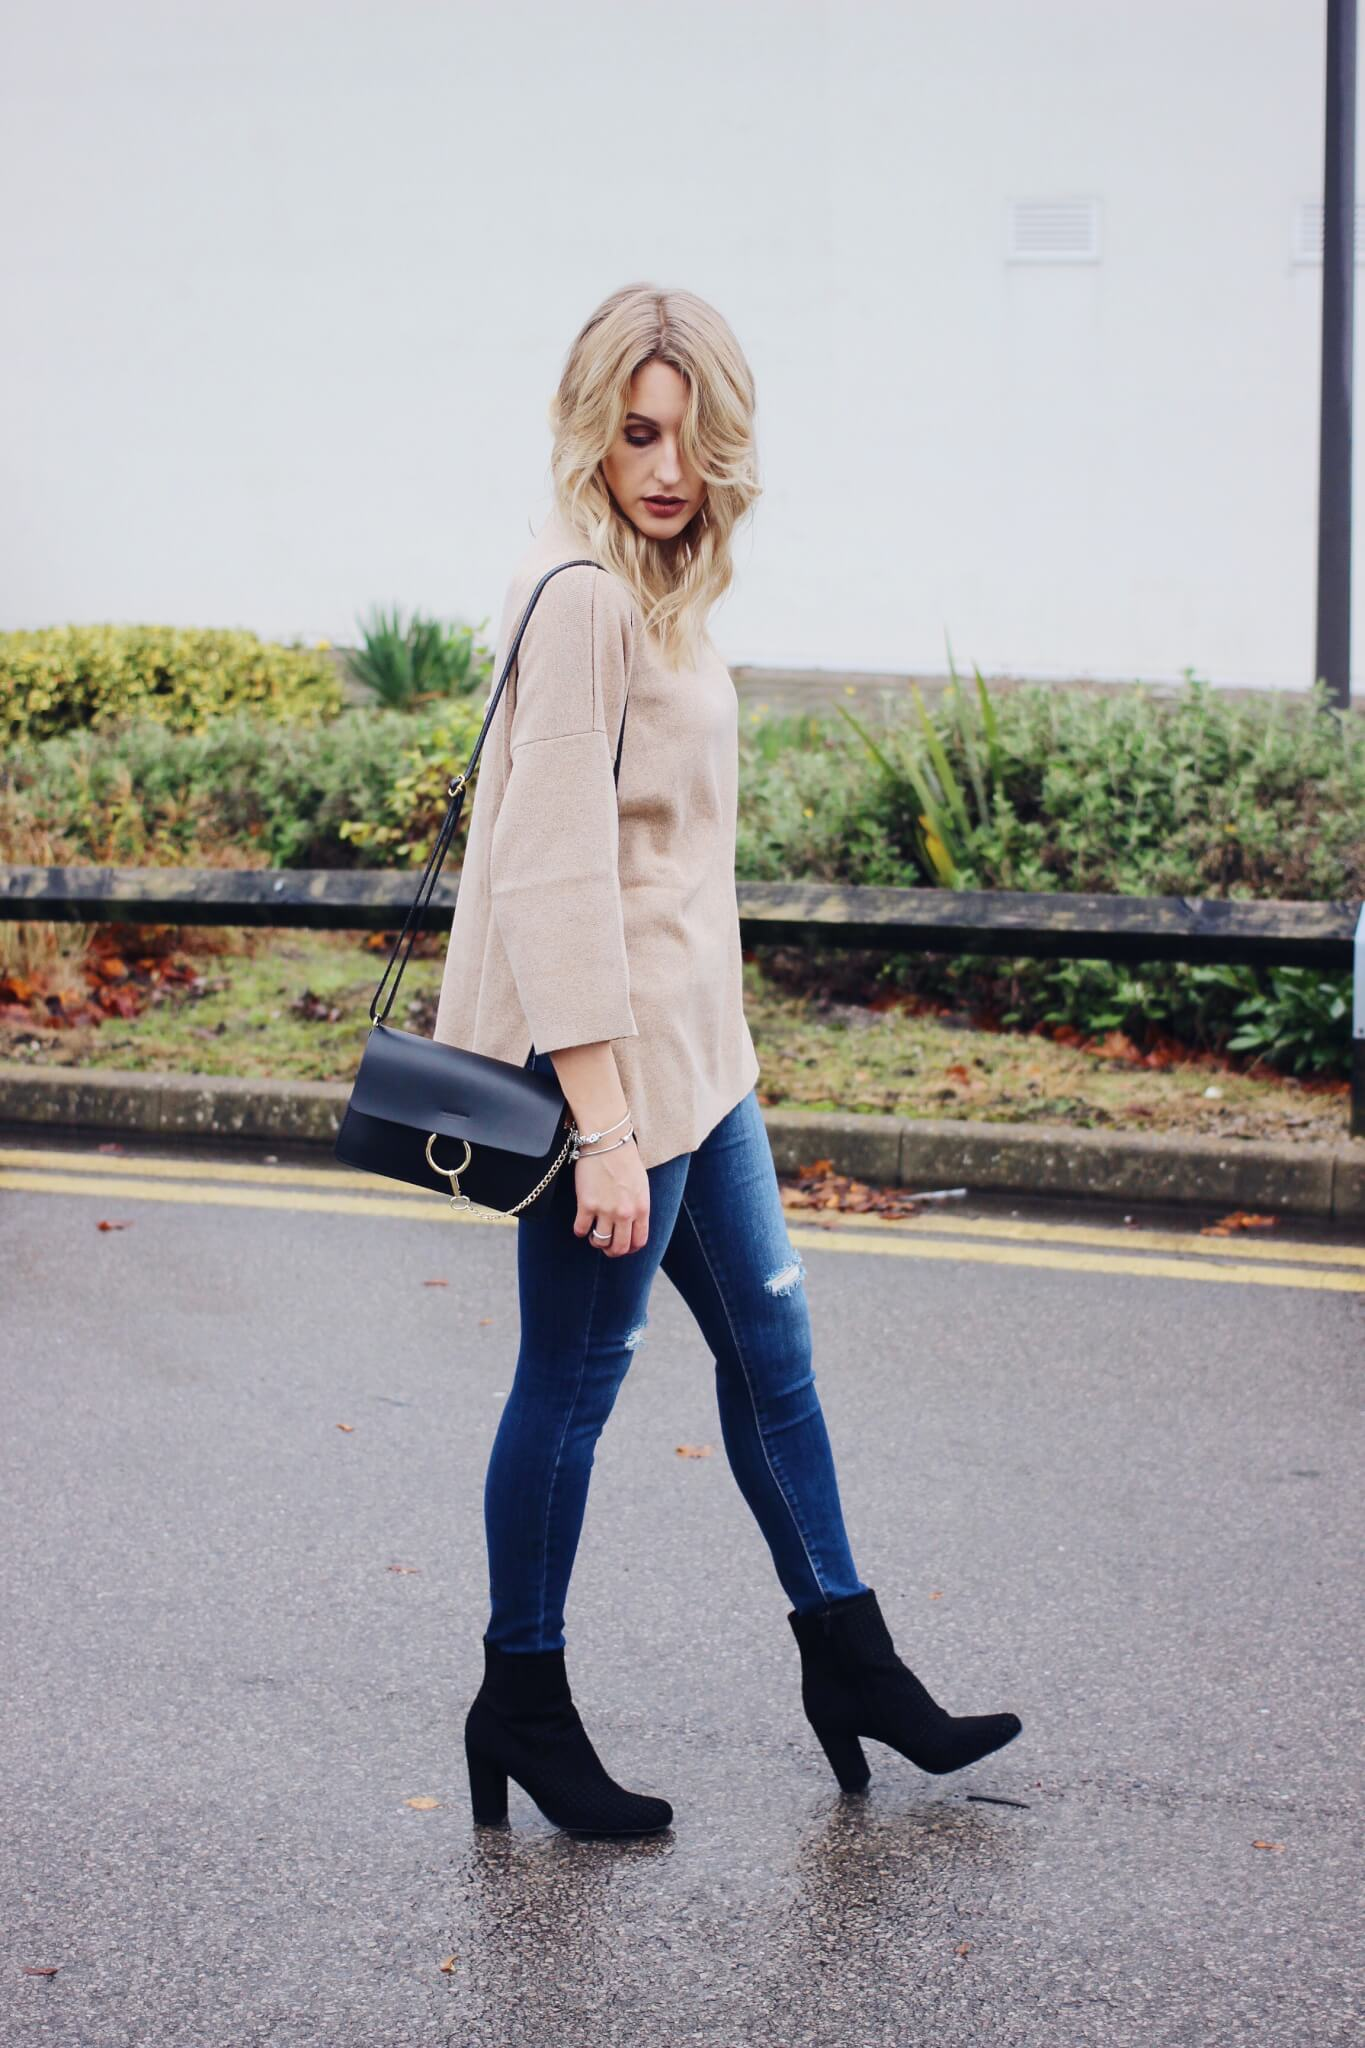 Casual Everyday Outfit On Uk Fashion Blog Lurchhoundloves